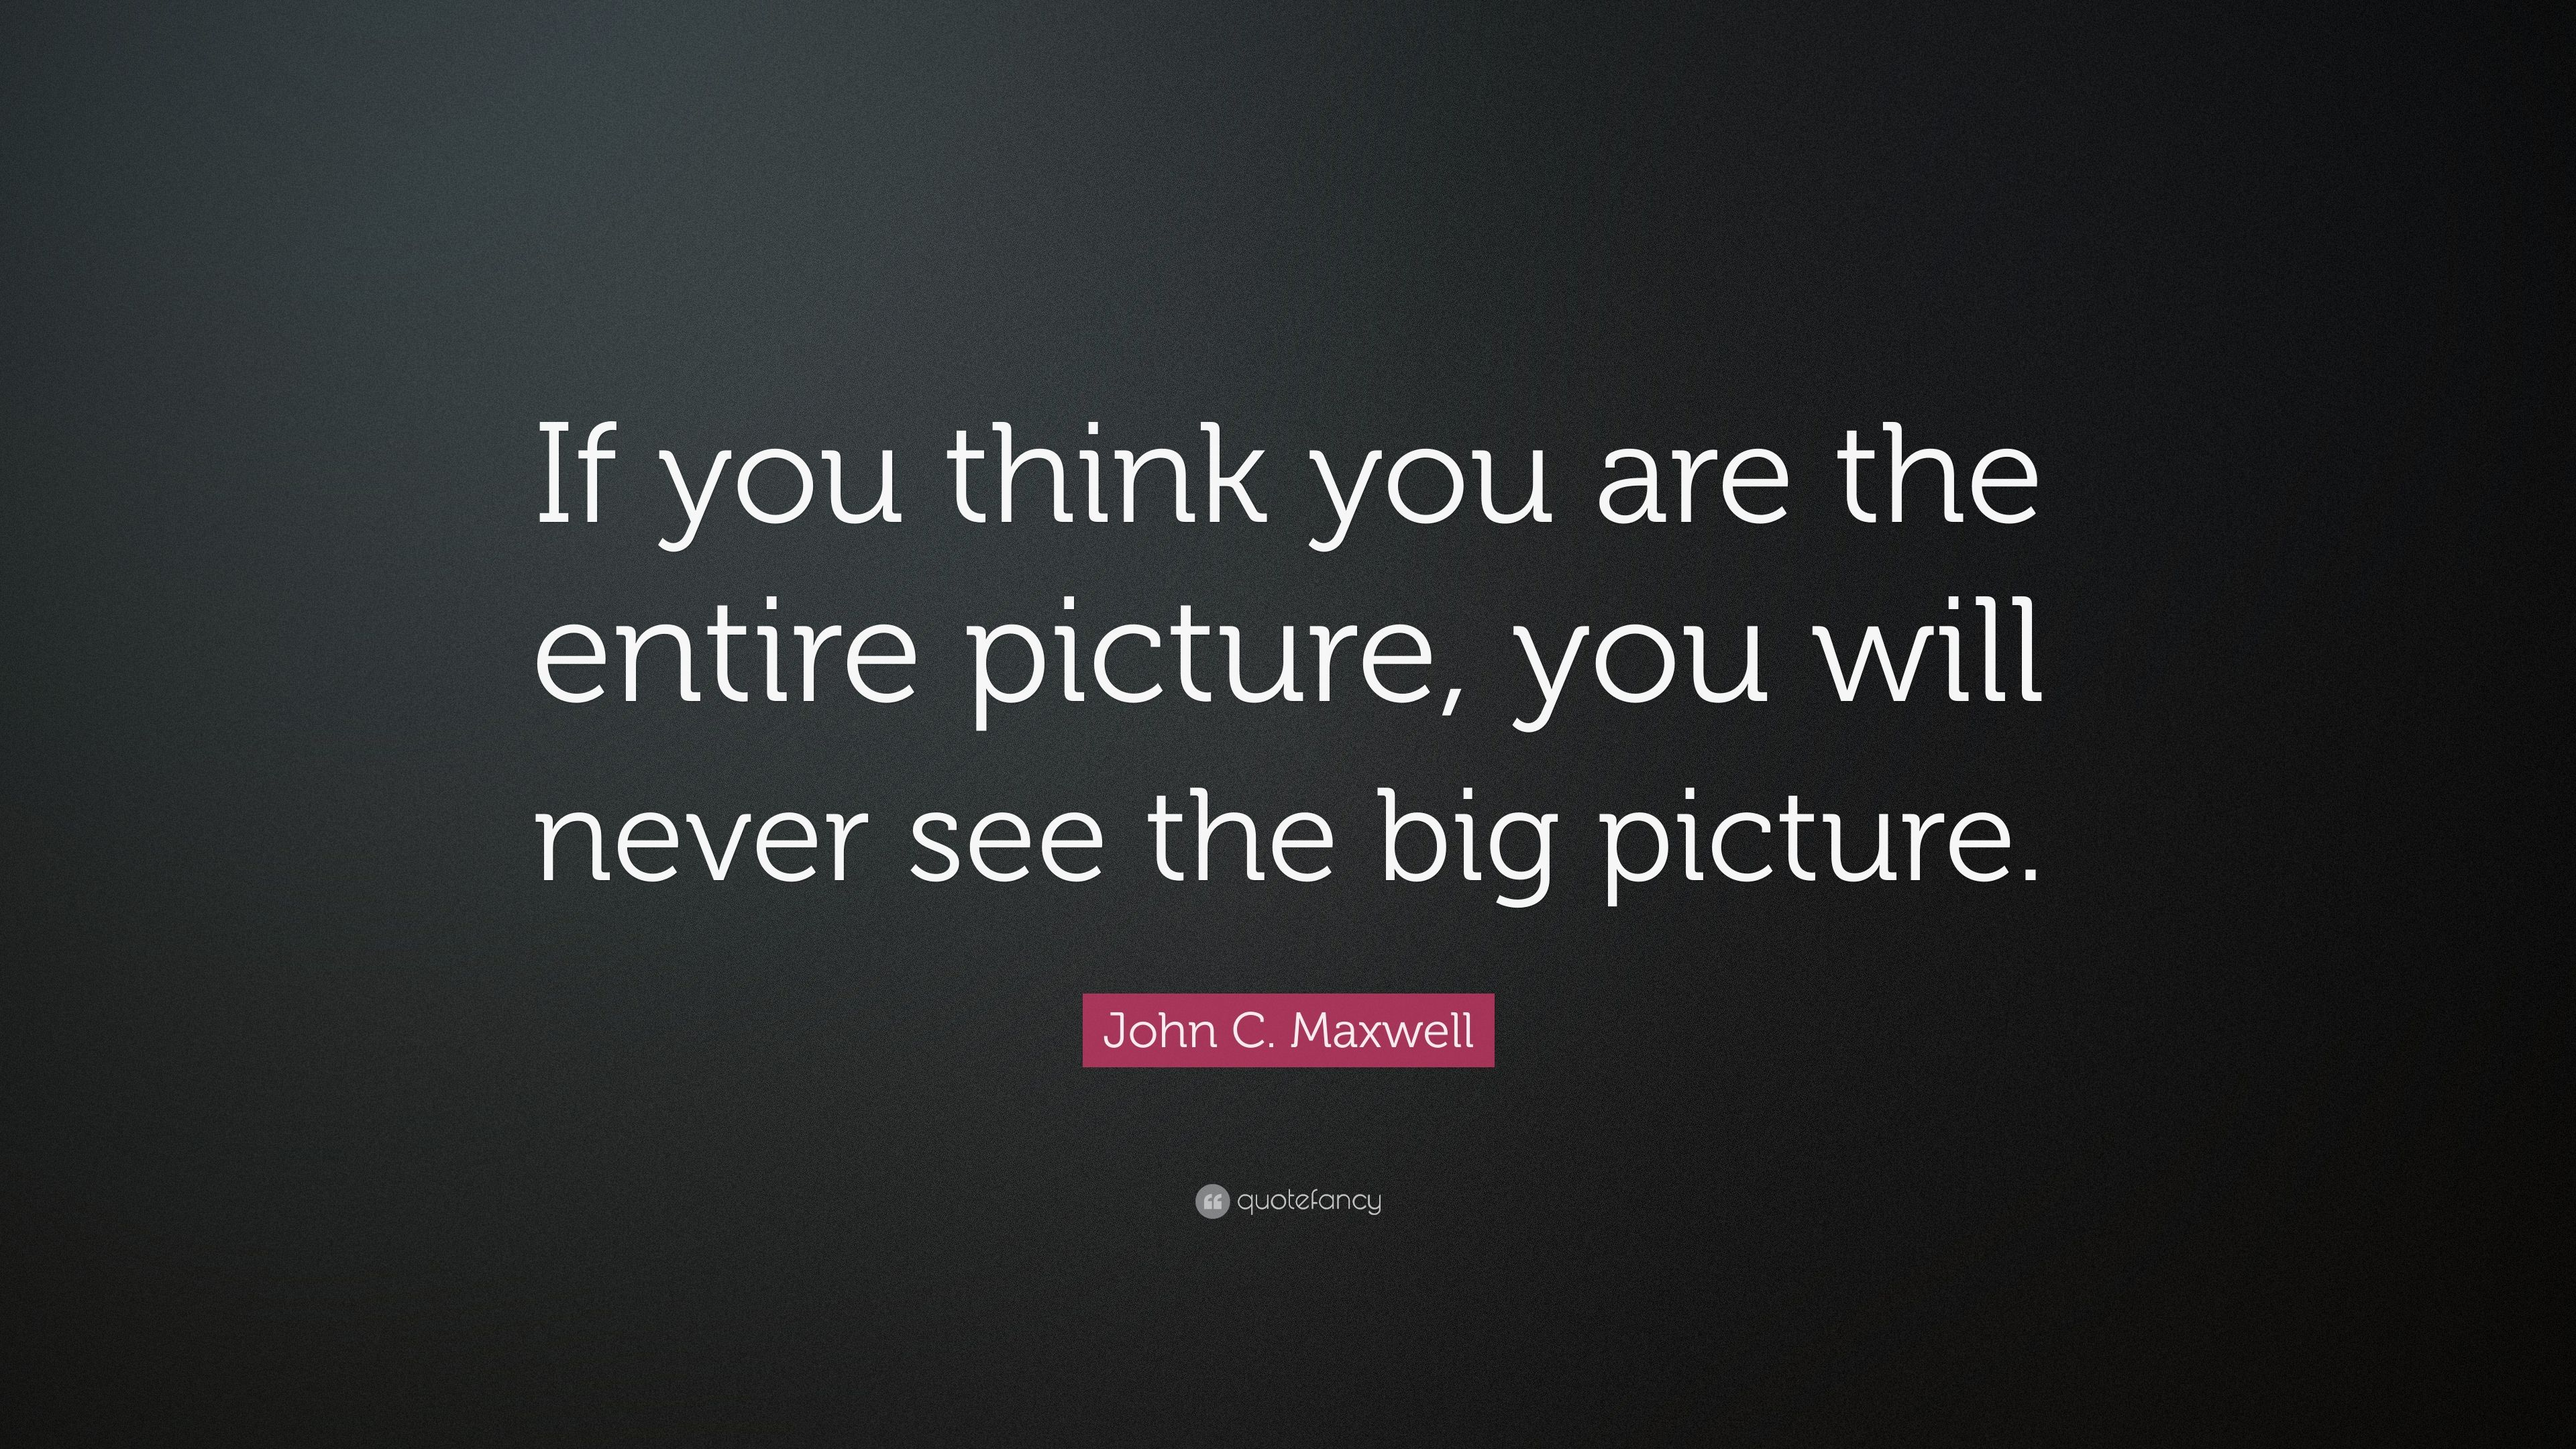 John C Maxwell Quote If You Think You Are The Entire Picture You